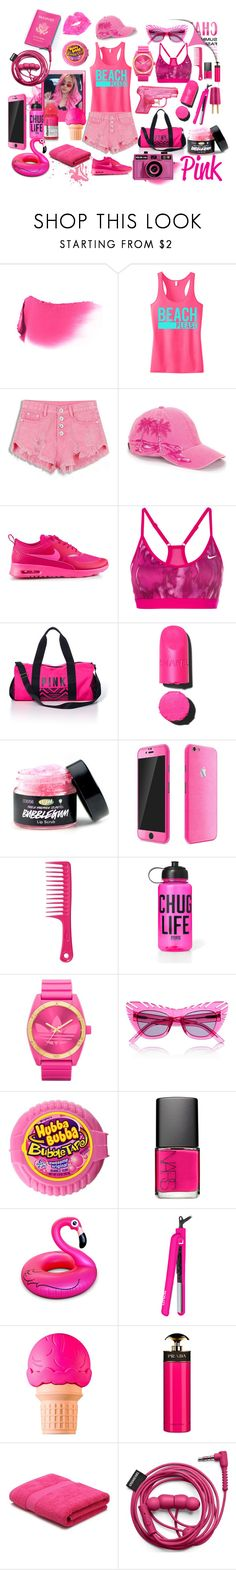 """Crazy Pink World 2"" by liddy-white ❤ liked on Polyvore featuring Yves Saint Laurent, NIKE, Victoria's Secret PINK, Chanel, Passport, Evolve, adidas, House of Holland, NARS Cosmetics and BigMouth"